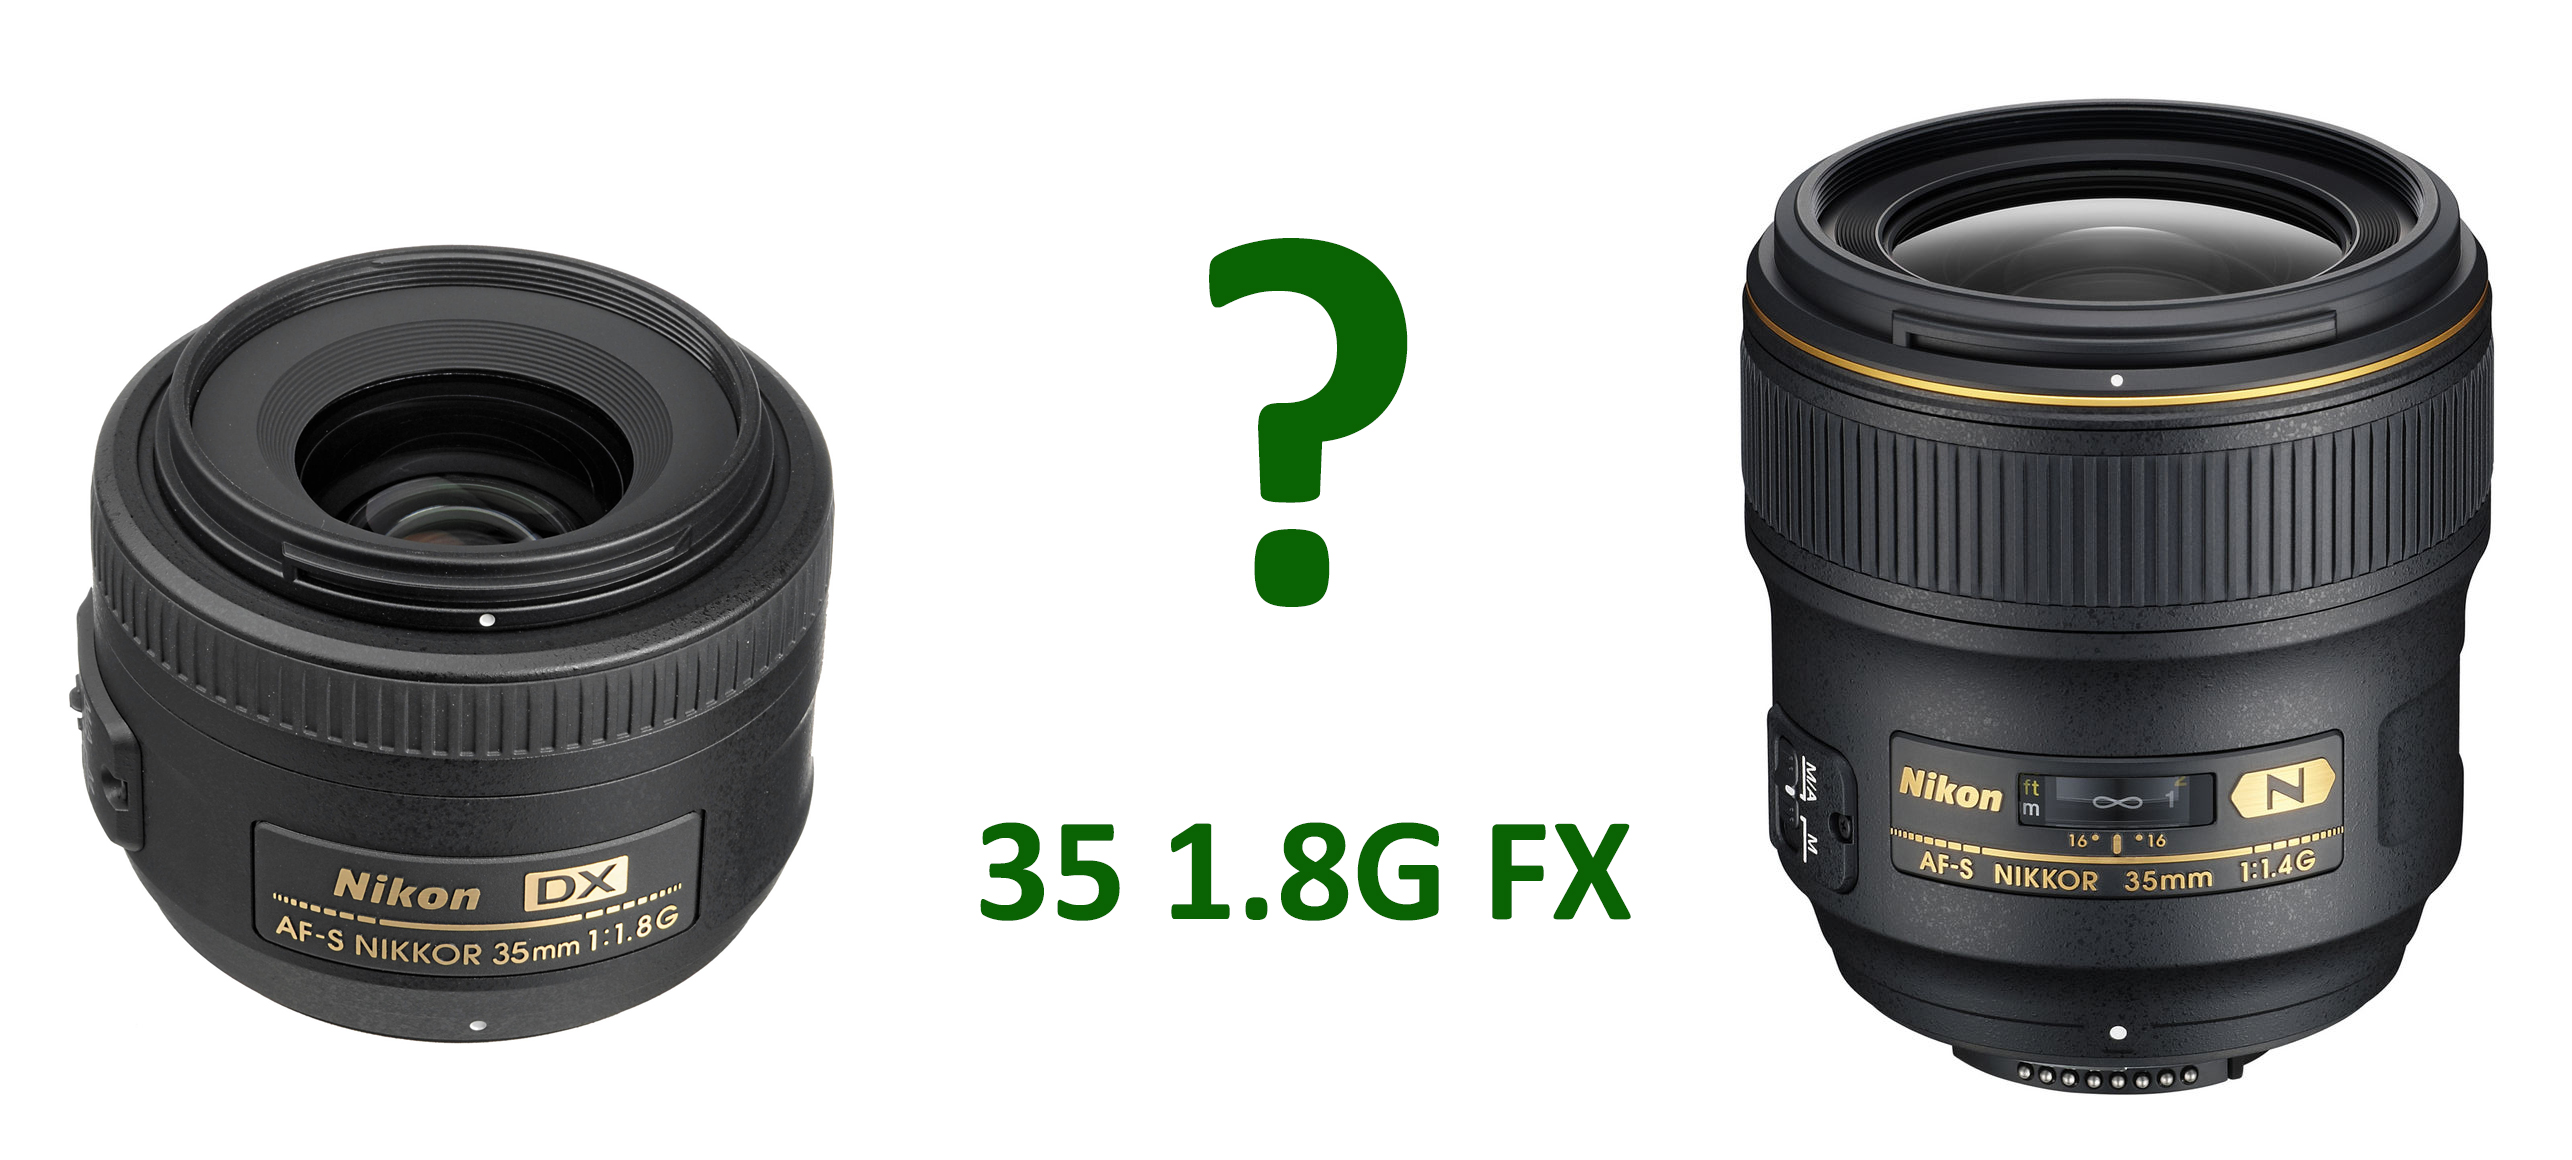 AF-S Nikkor 35mm f/1.8G FX lens to be announced around CES 2014 ...